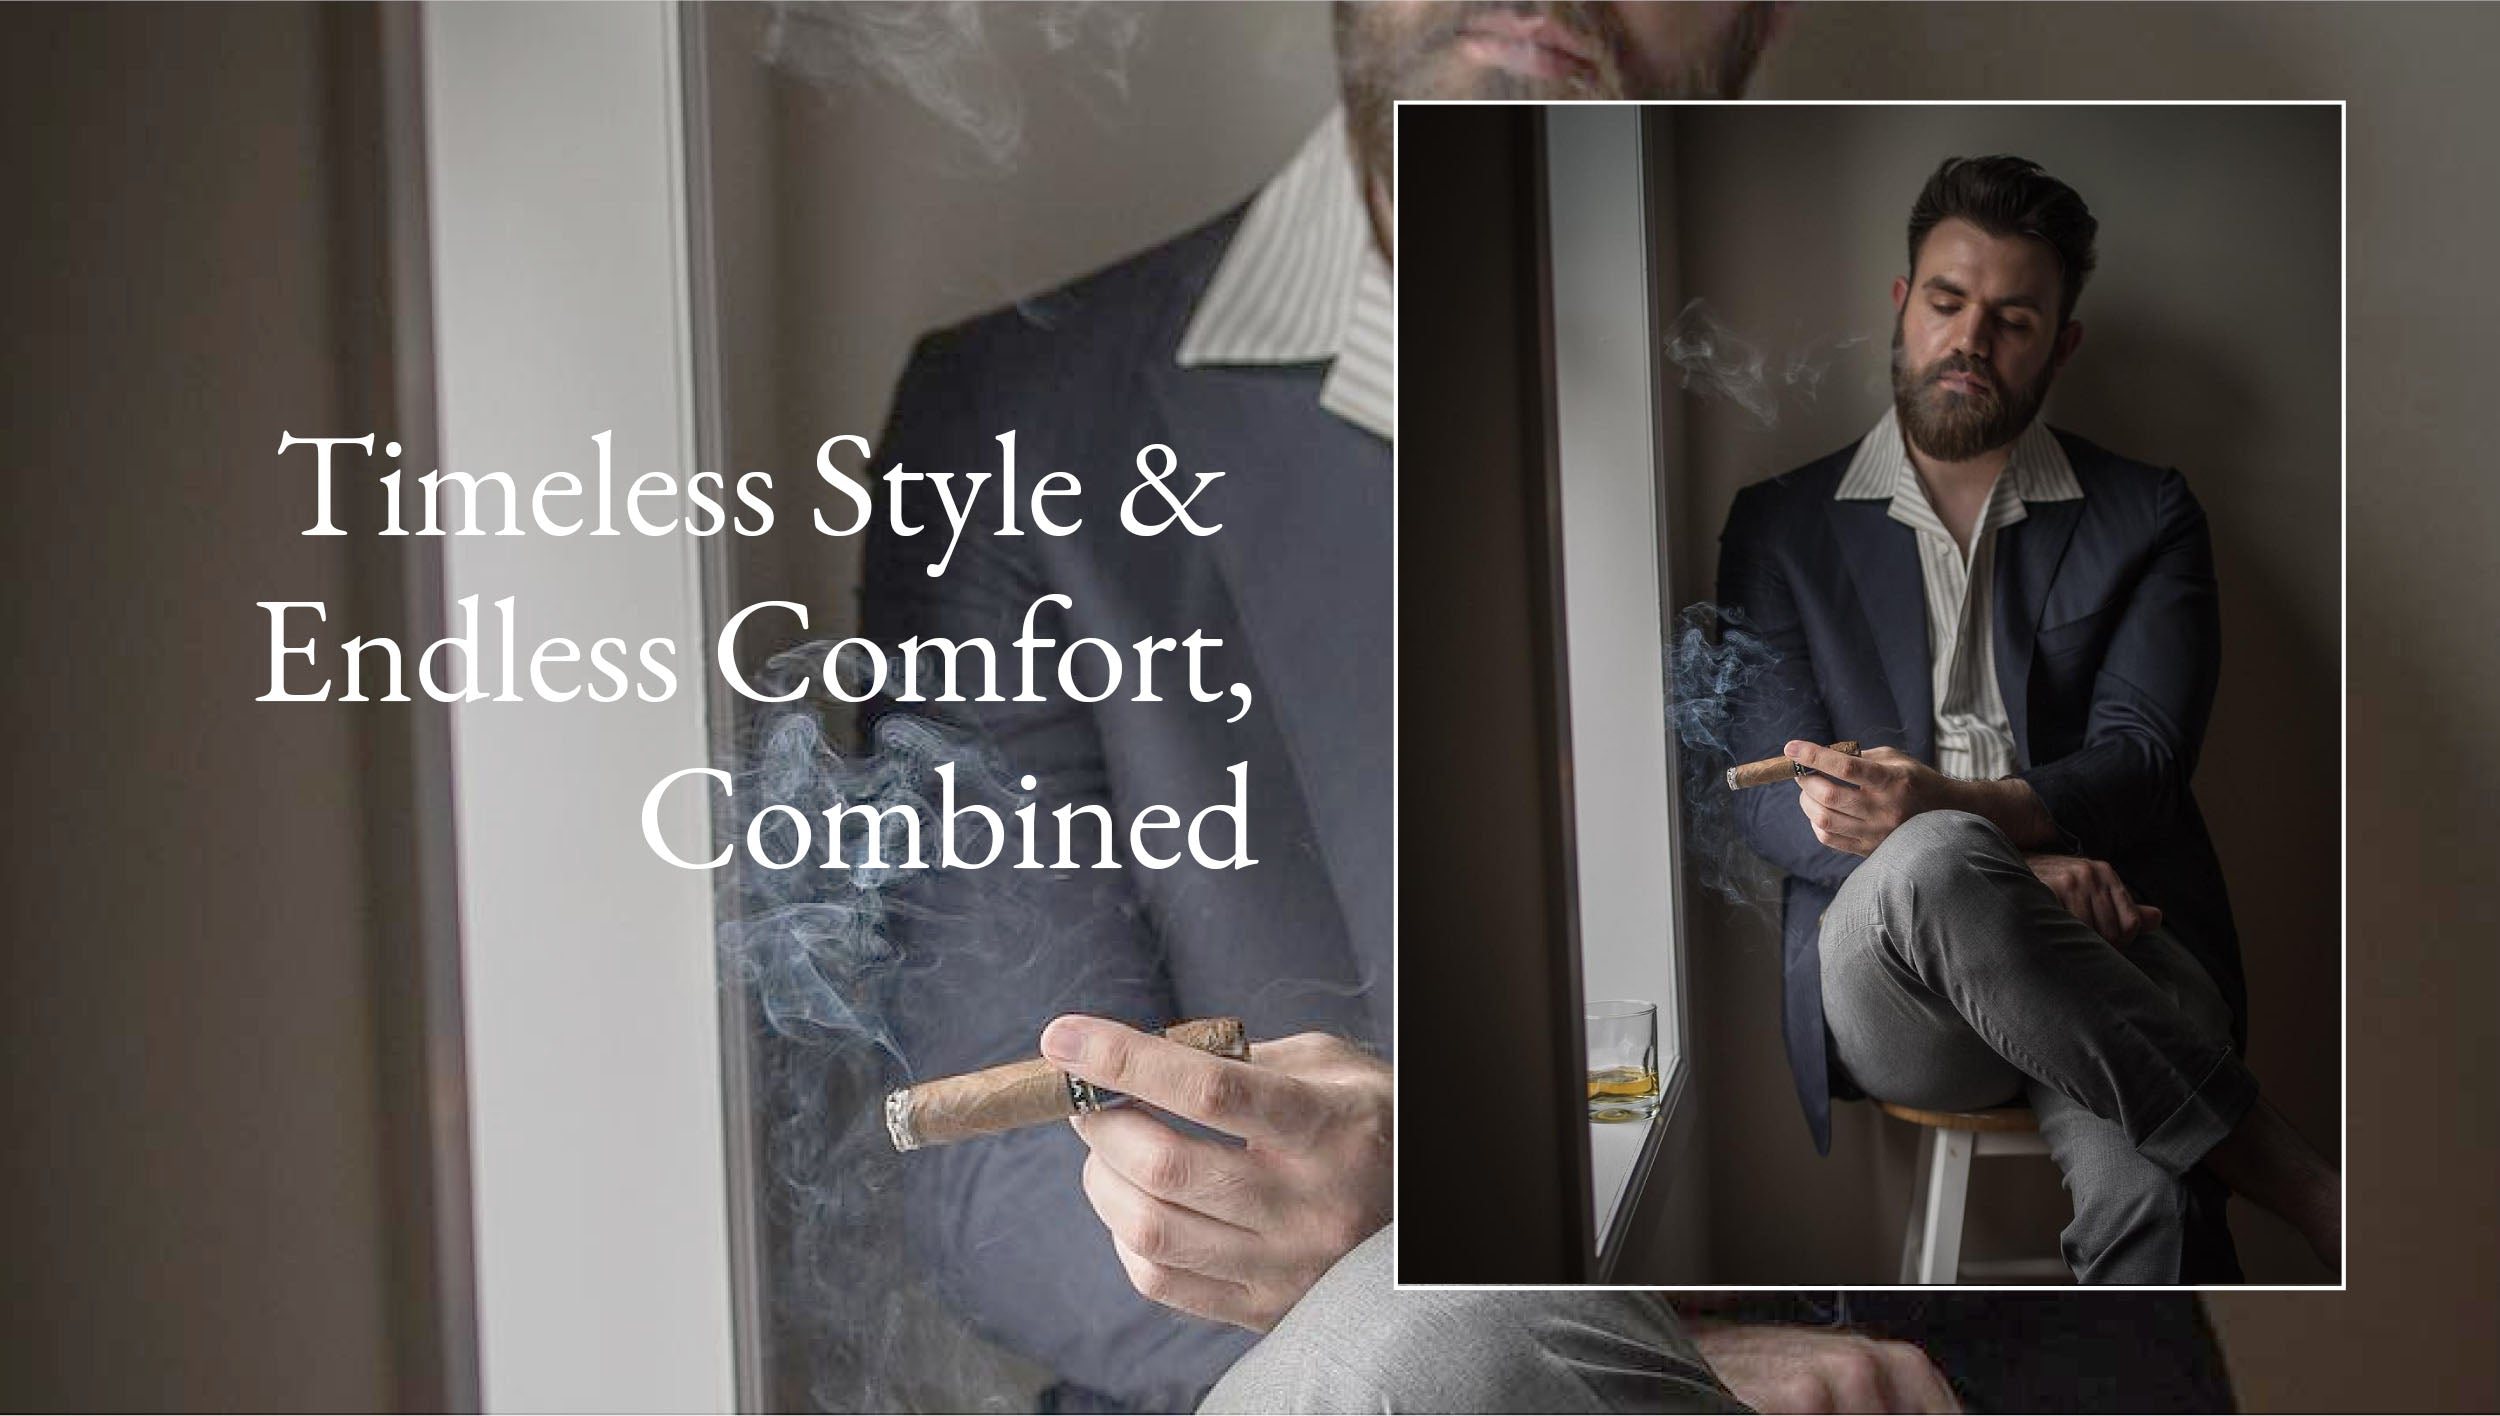 Timeless Style & Endless Comfort,Combined